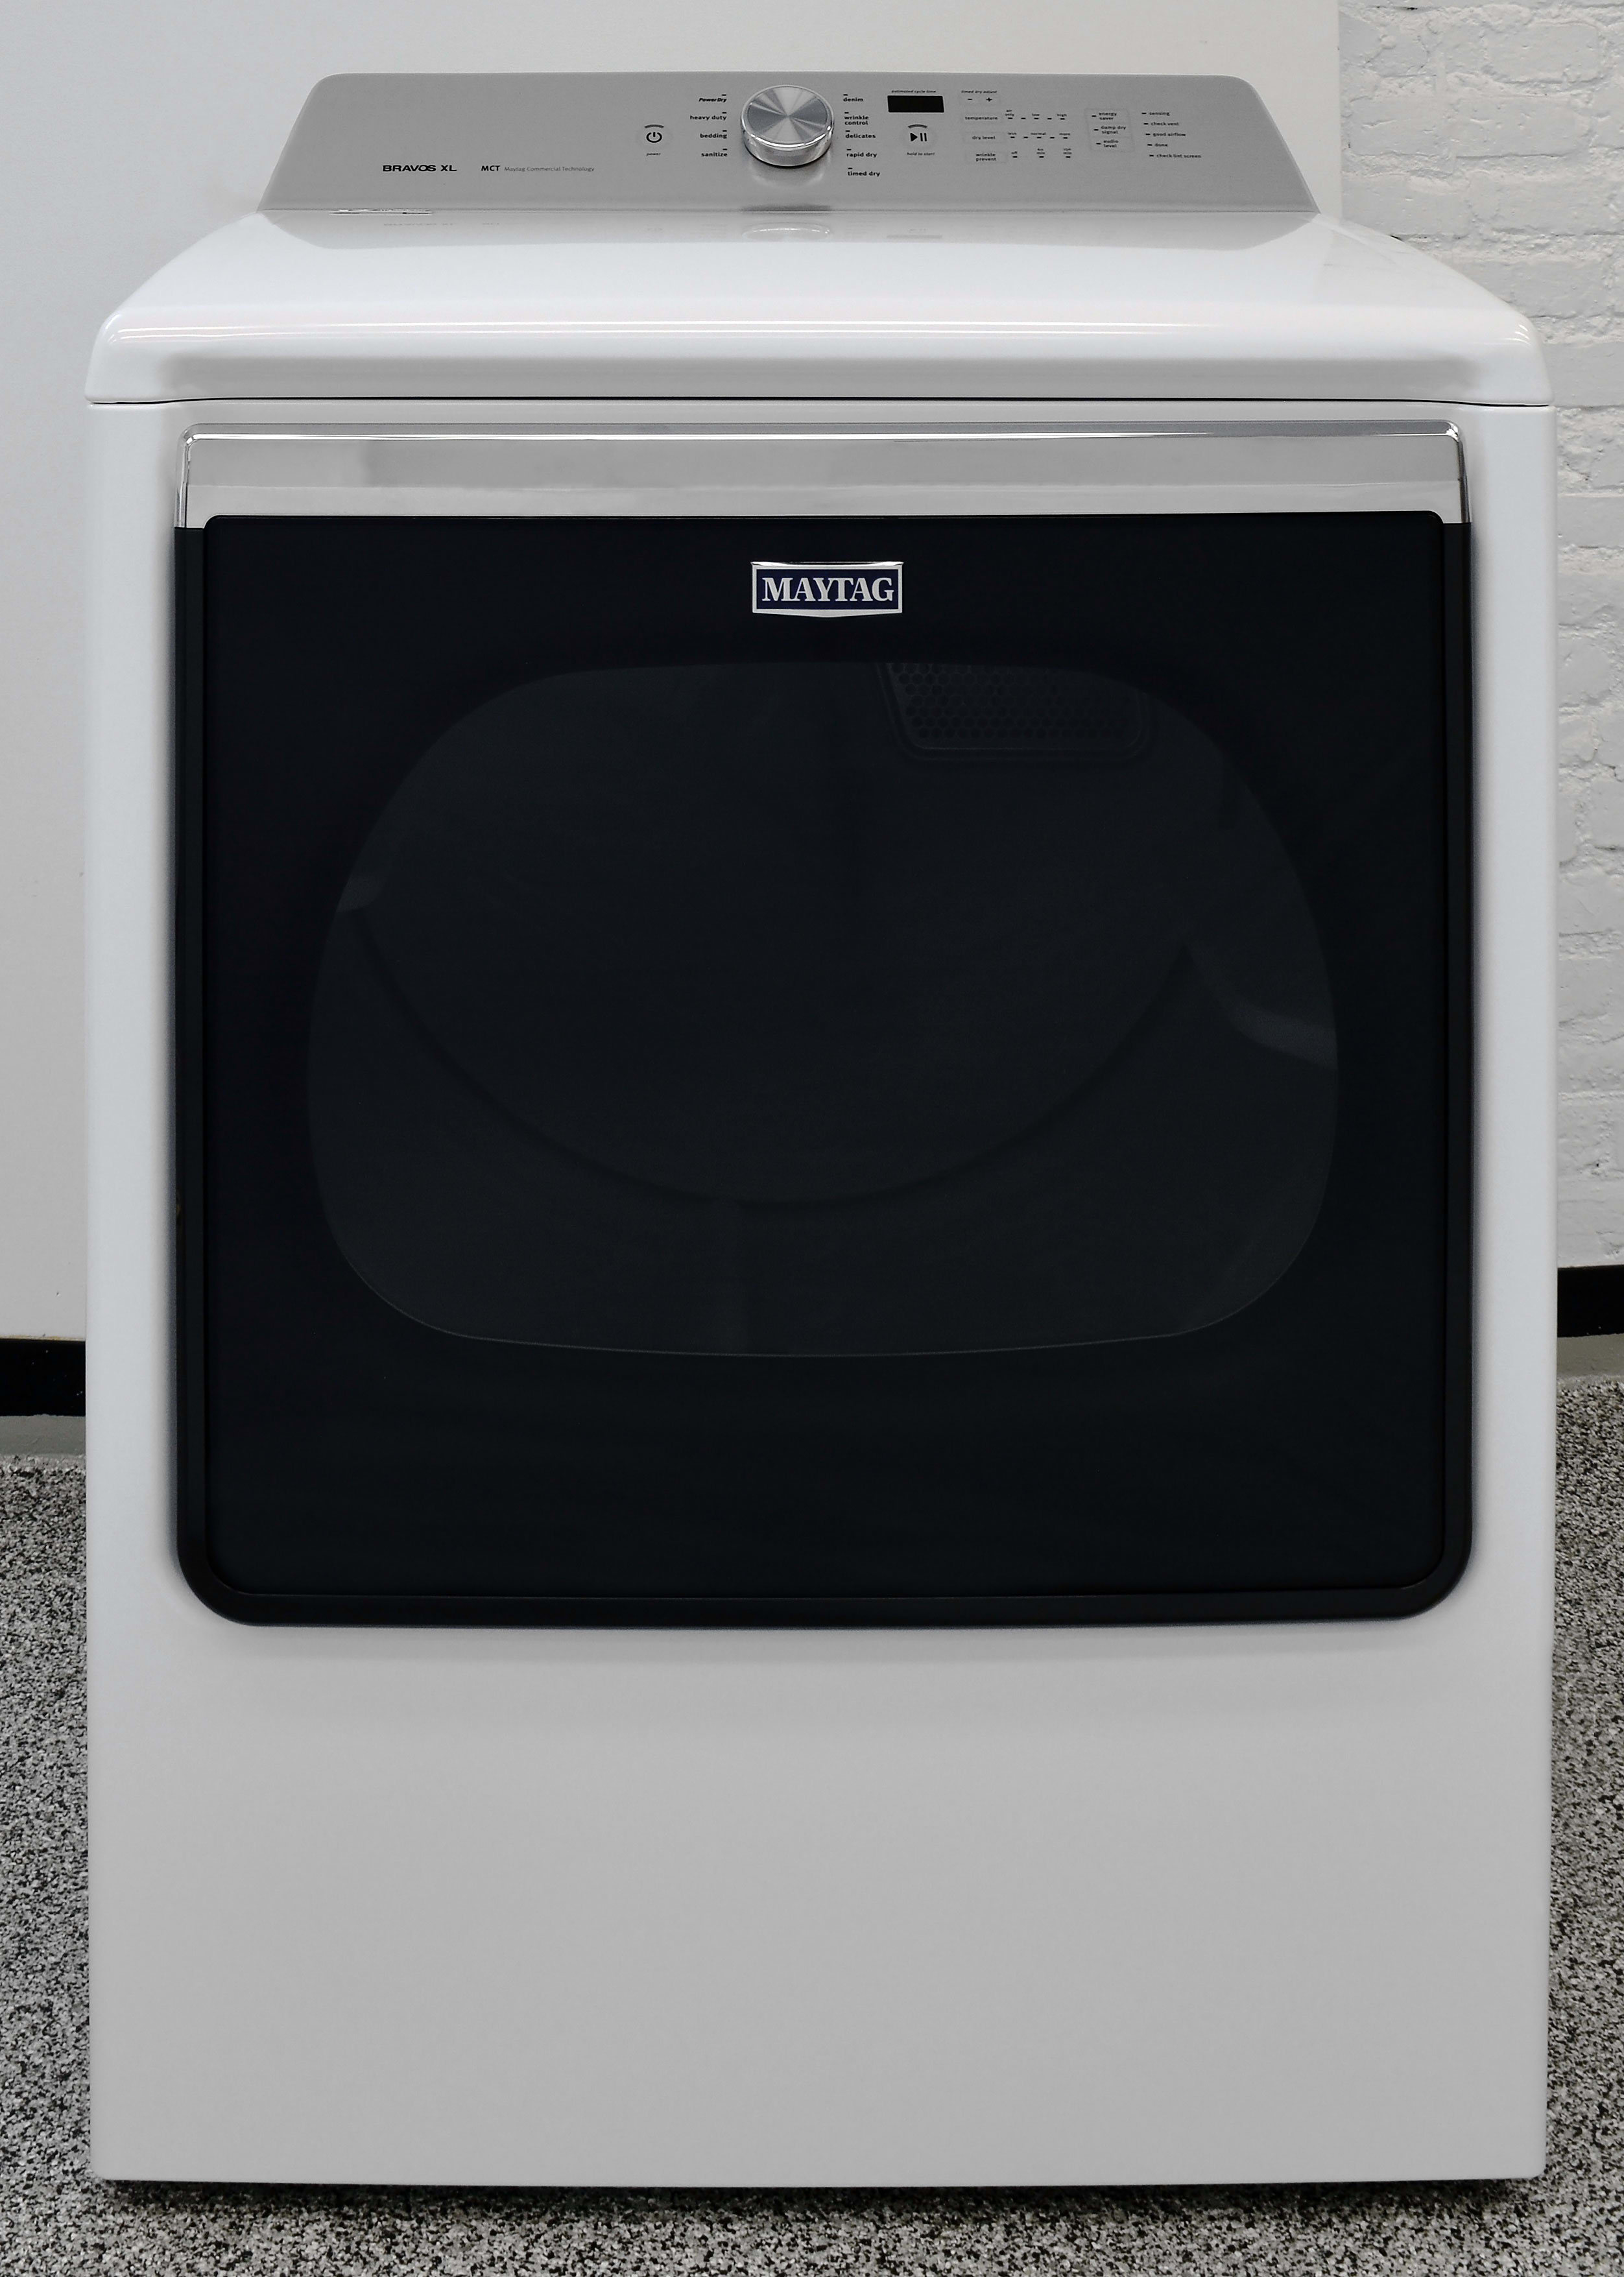 The 8.8-cu.-ft. Maytag Bravos MEDB835DW is a versatile and highly effective dryer.